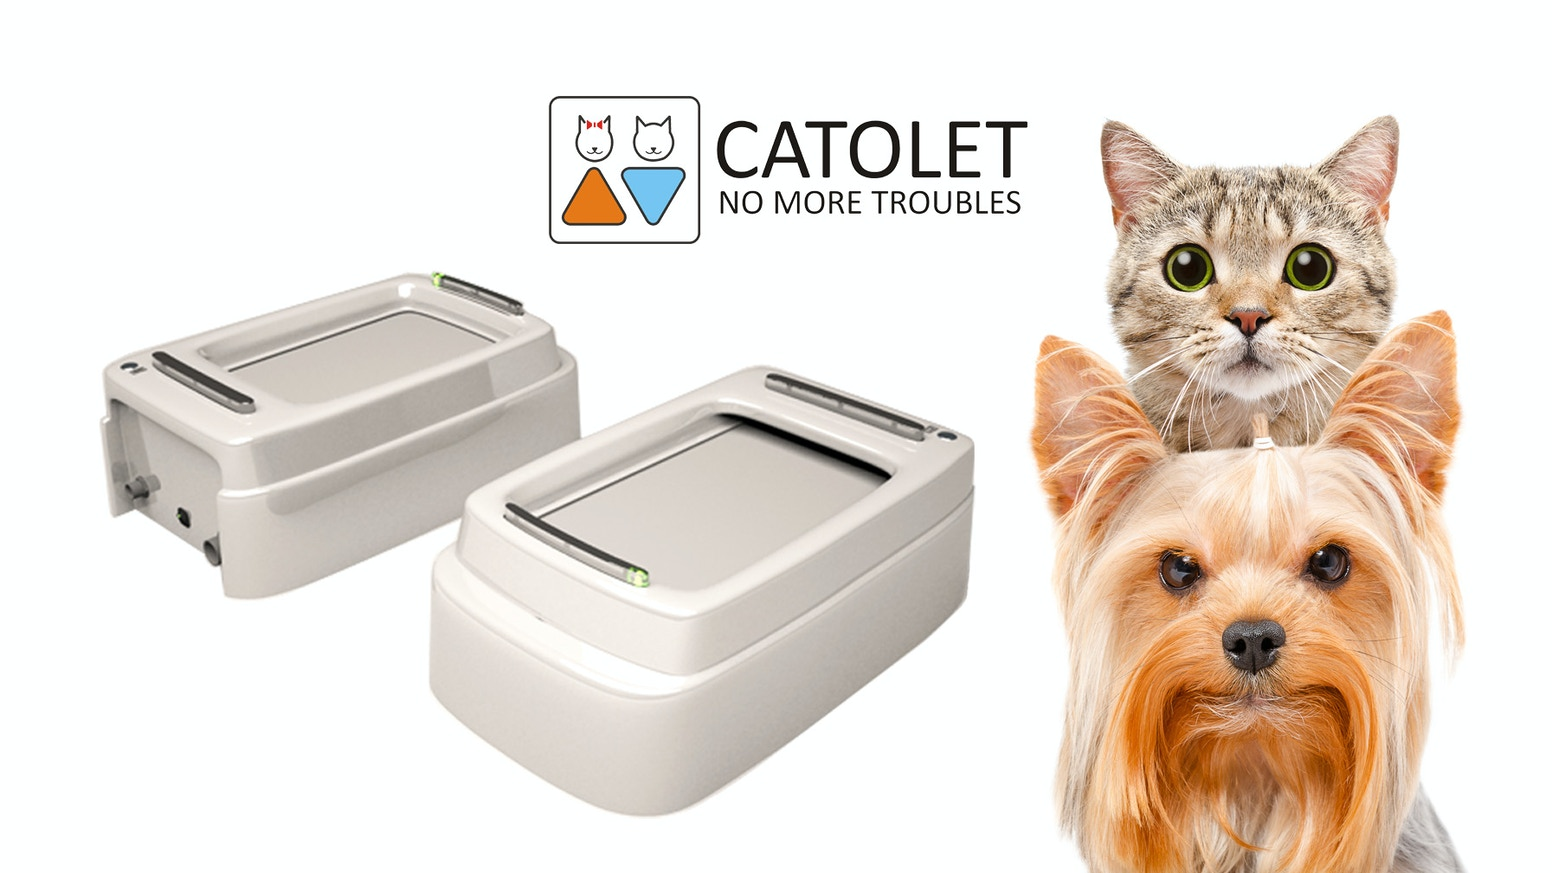 Catolet - is a unique automatic litter box for cats and small dogs.